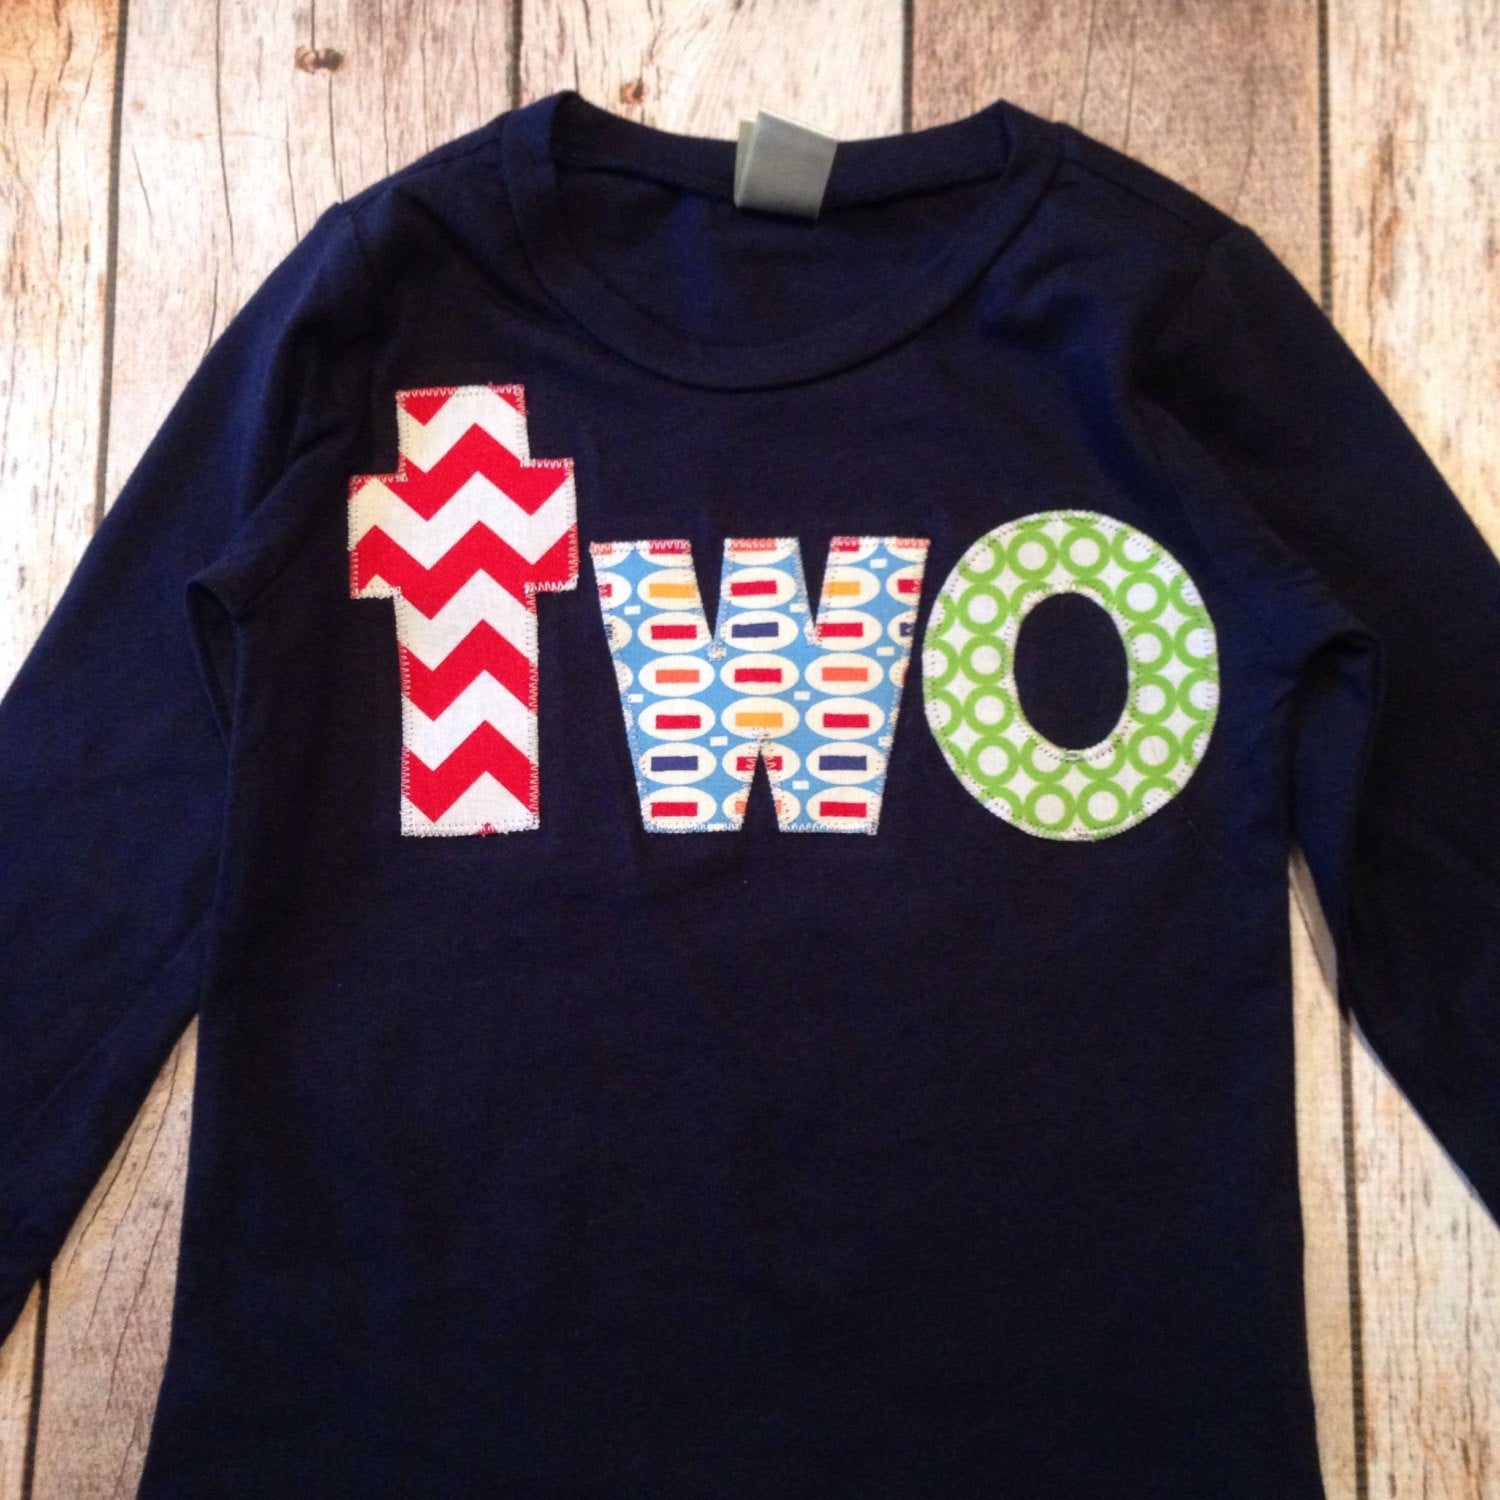 FAN PHOTO lowercase two Long Sleeve Birthday Shirt  in navy with red chevron, blue pez, green circles for 2 year old